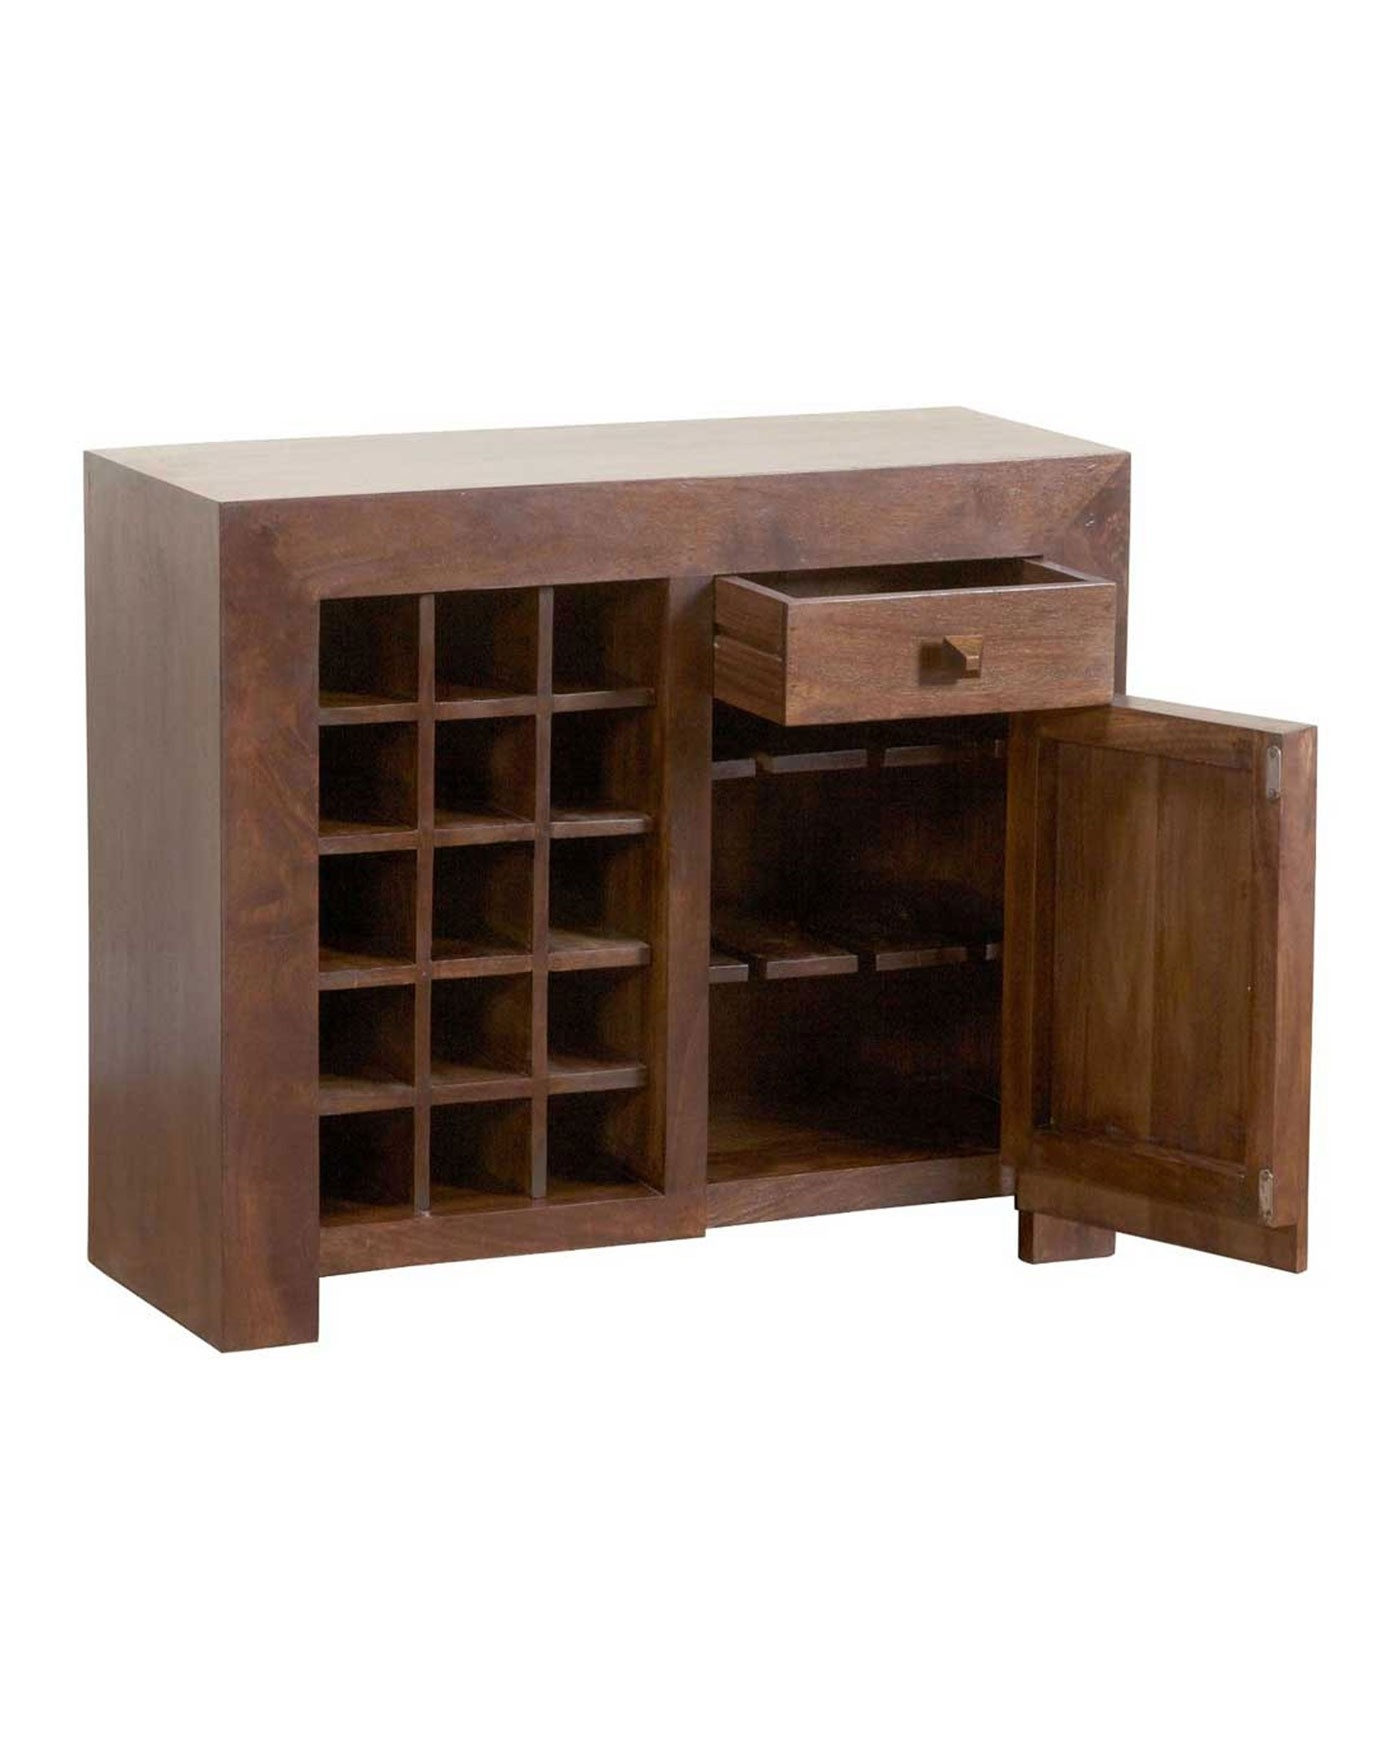 Dakota Sideboard With Wine Rack Dark Shade – Homescapes Intended For Most Recent Bale Rustic Grey Sideboards (#8 of 20)